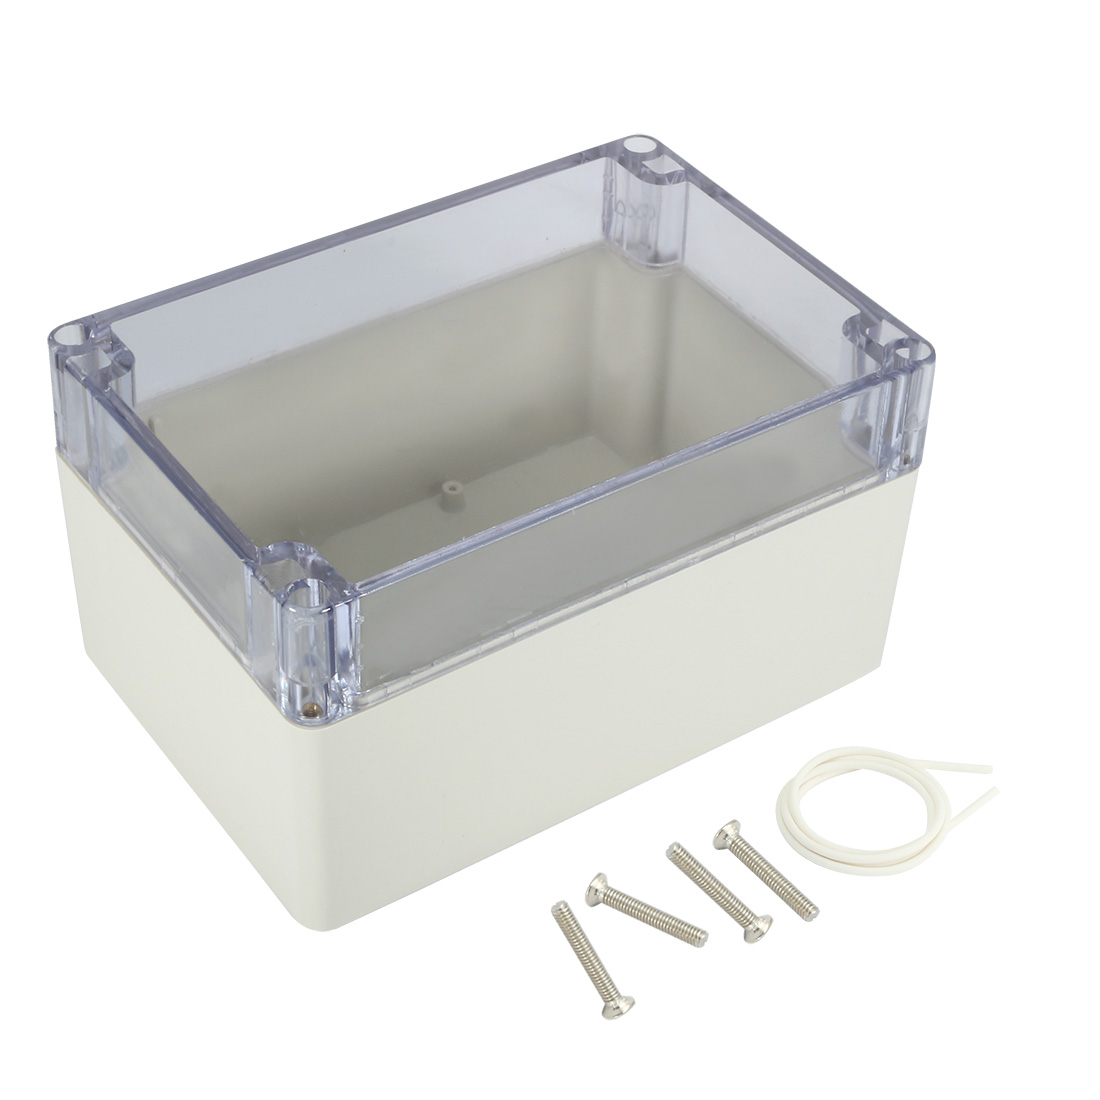 "6.3""x4.3""x3.5""(160mmx110mmx90mm) ABS Junction Box Universal Project Enclosure w PC Transparent Cover"